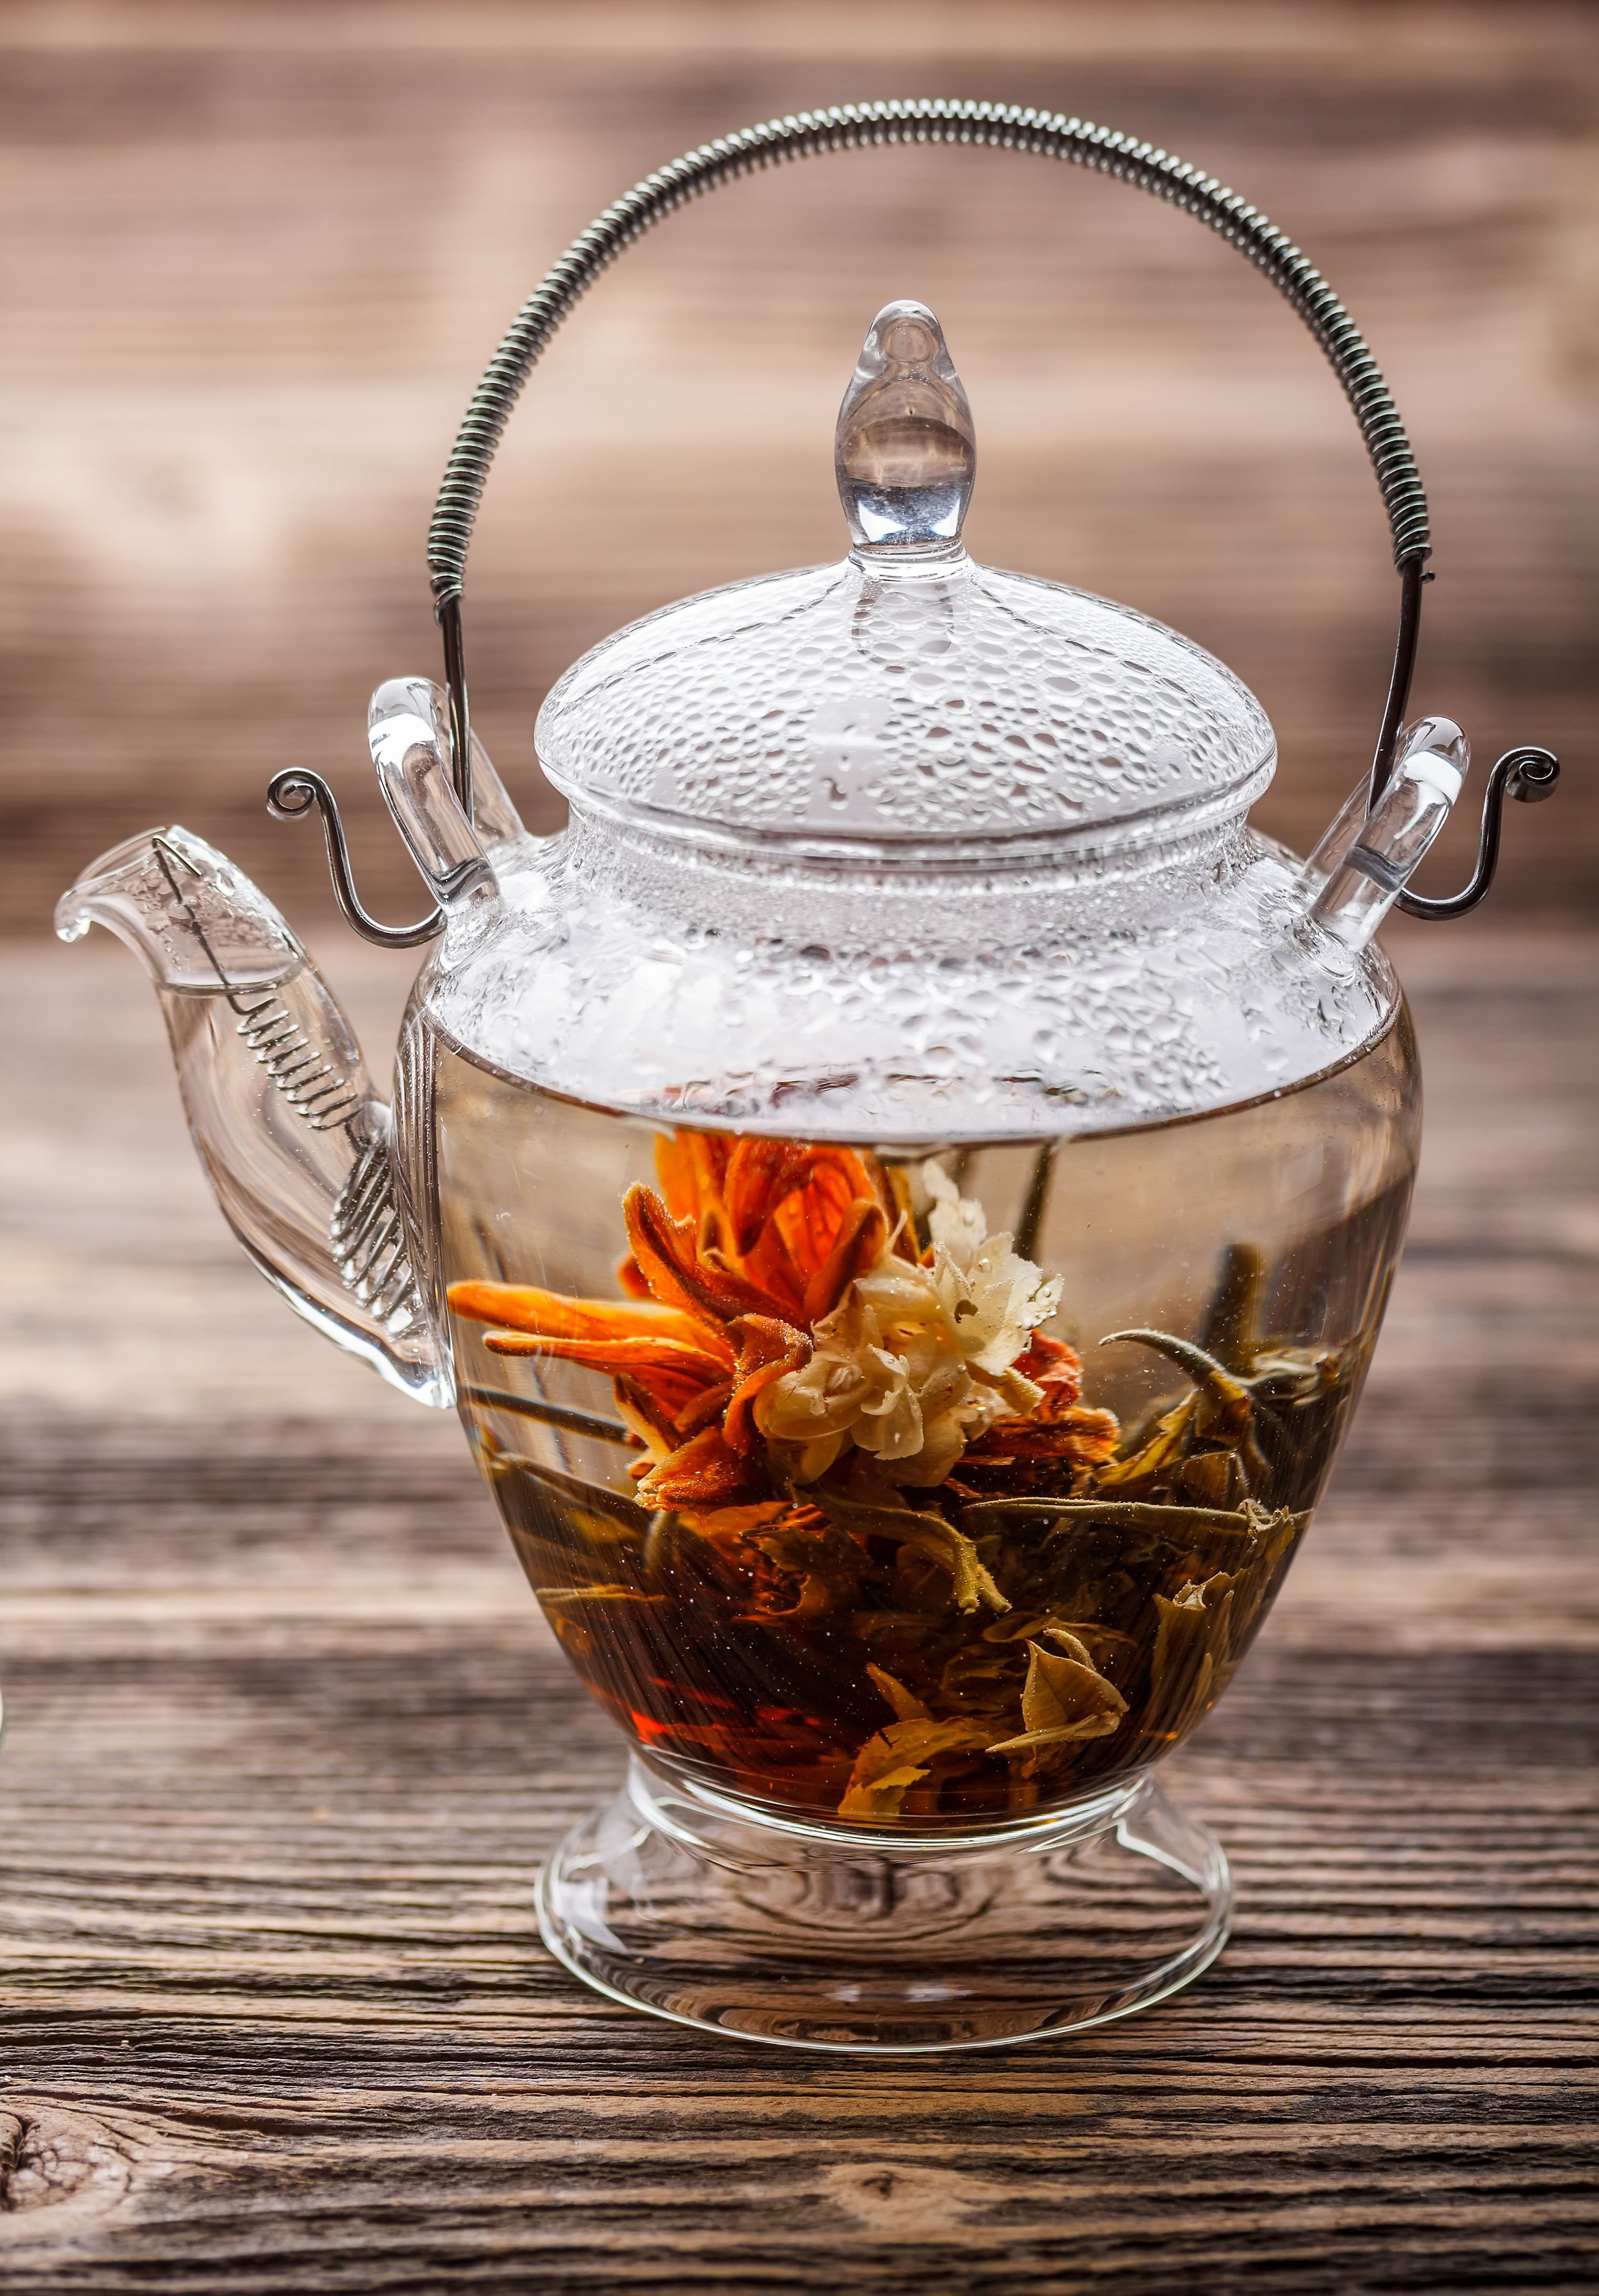 Chinese flower tea - 1000 Images About Flowering Tea On Pinterest Tes Sri Lanka And Glasses